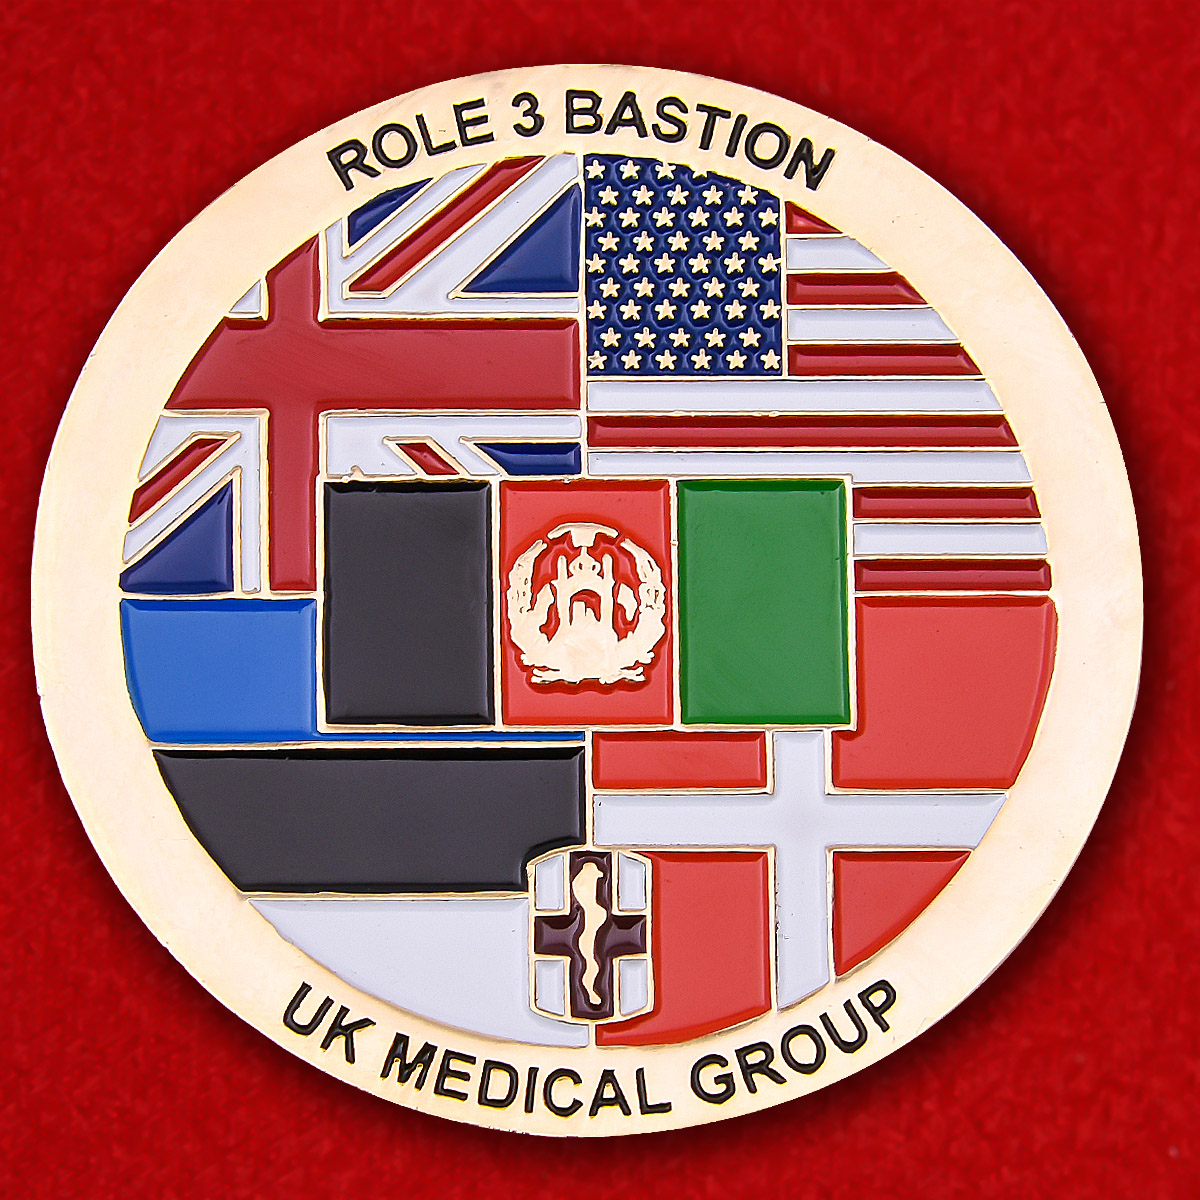 UK Medical Group Role 3 Bastion Operation Herrick 19A Challenge Coin